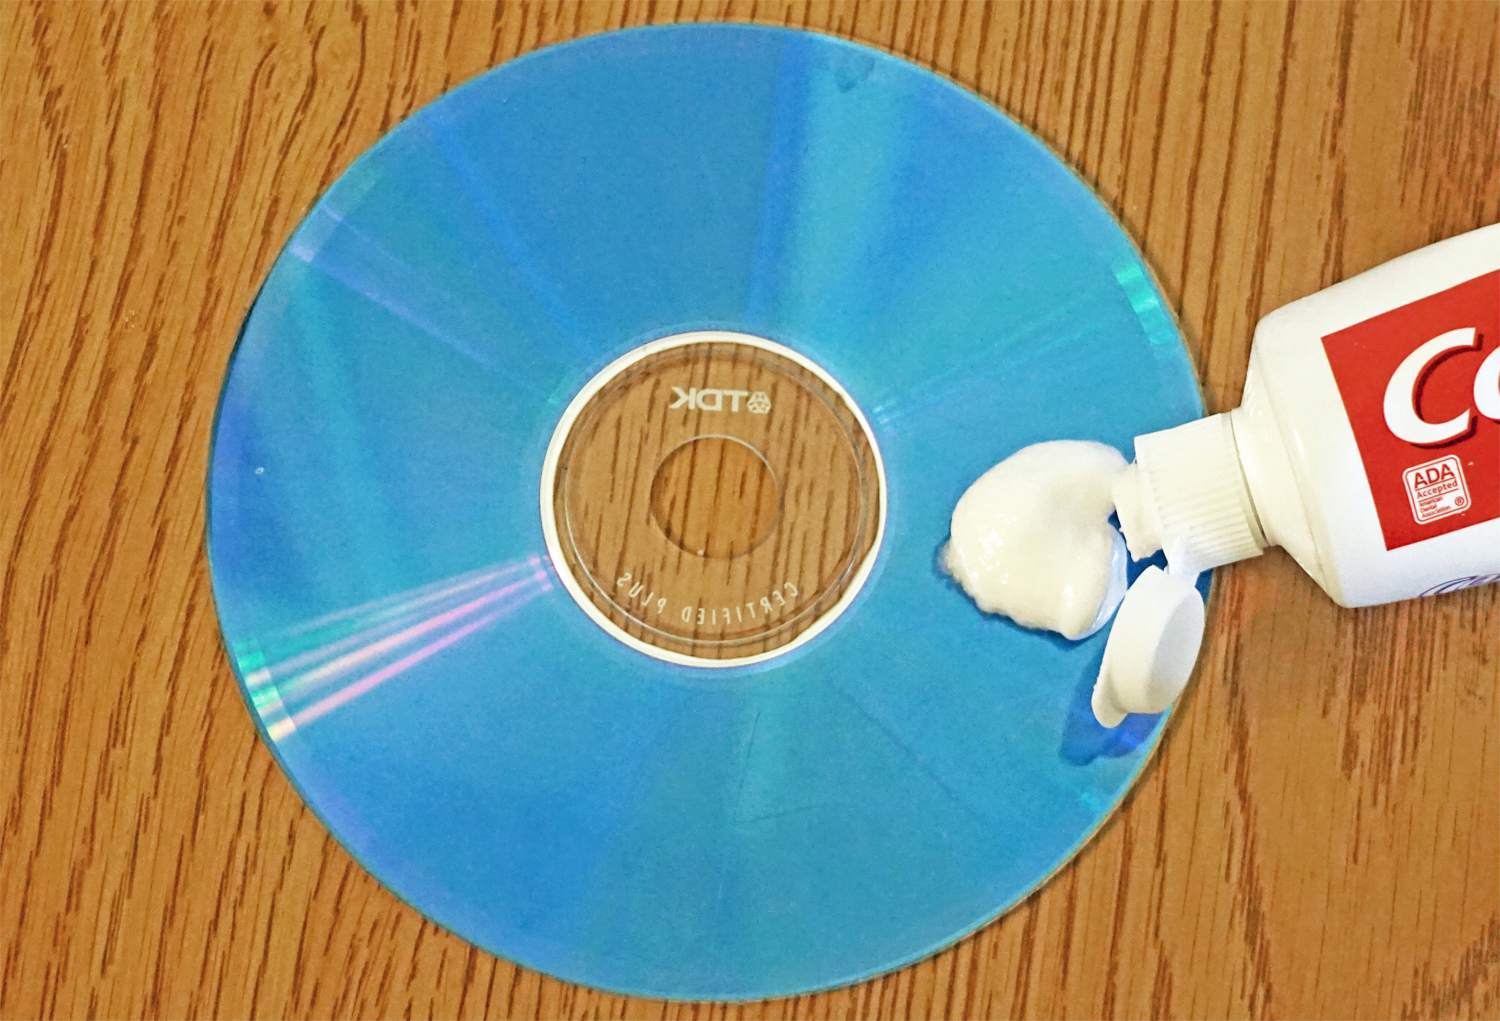 Scratched CD – Applying Toothpaste